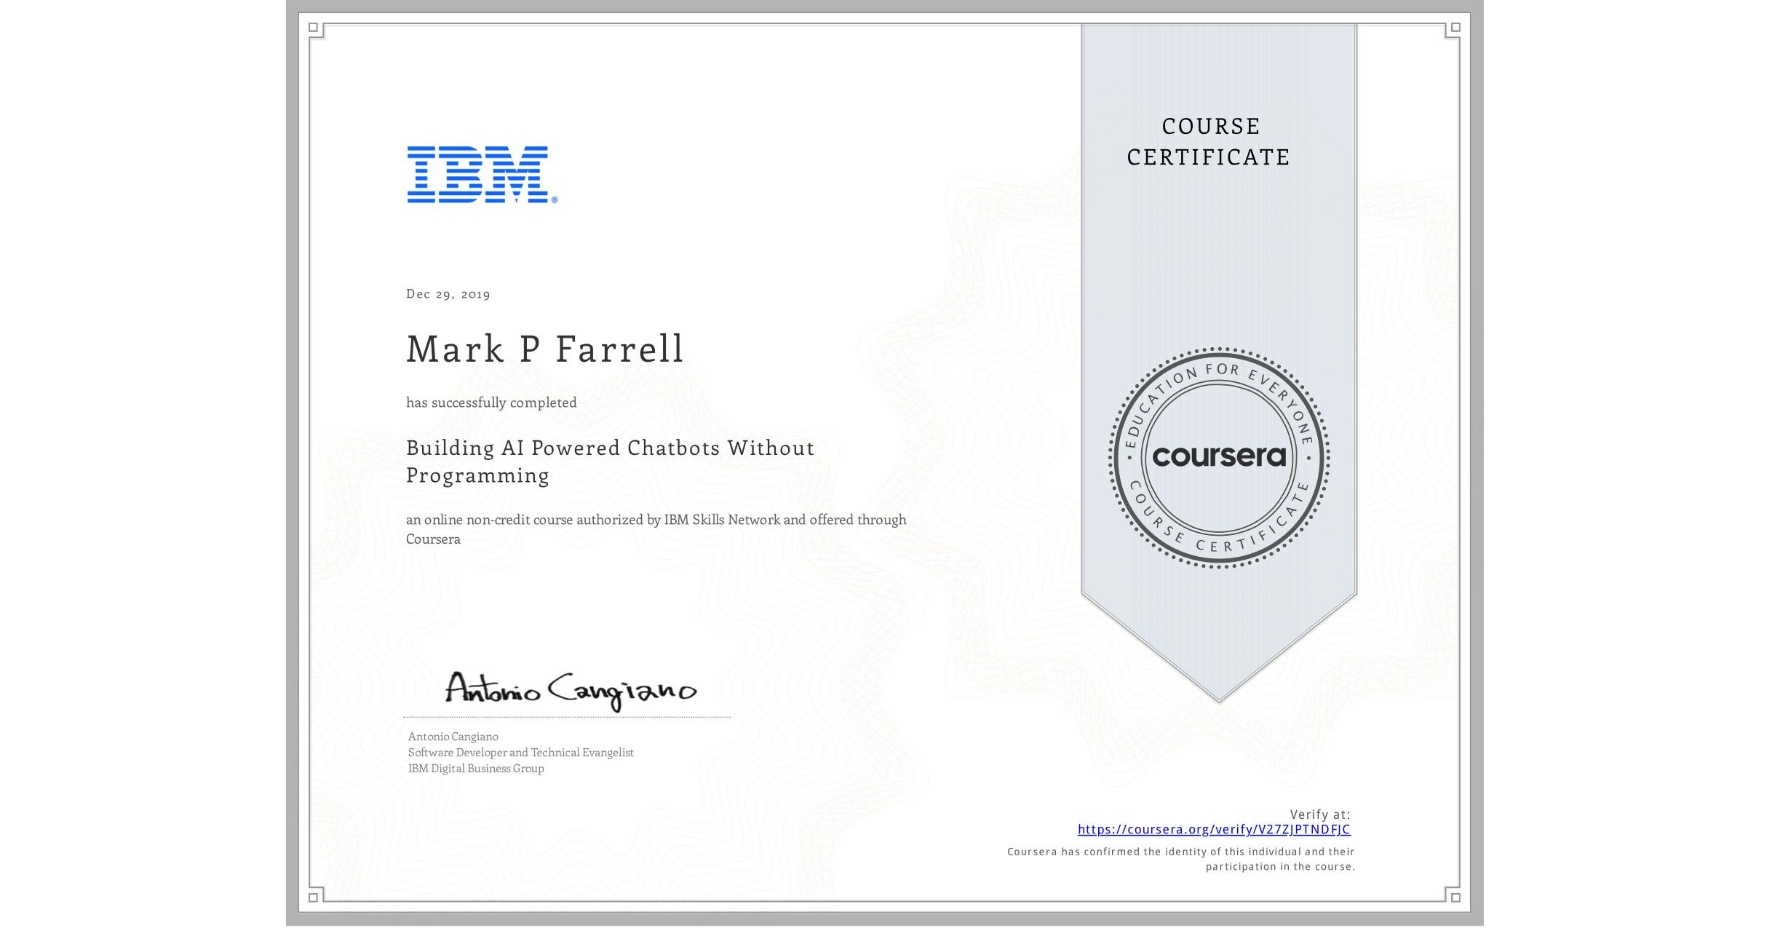 View certificate for Mark P Farrell, Building AI Powered Chatbots Without Programming, an online non-credit course authorized by IBM and offered through Coursera